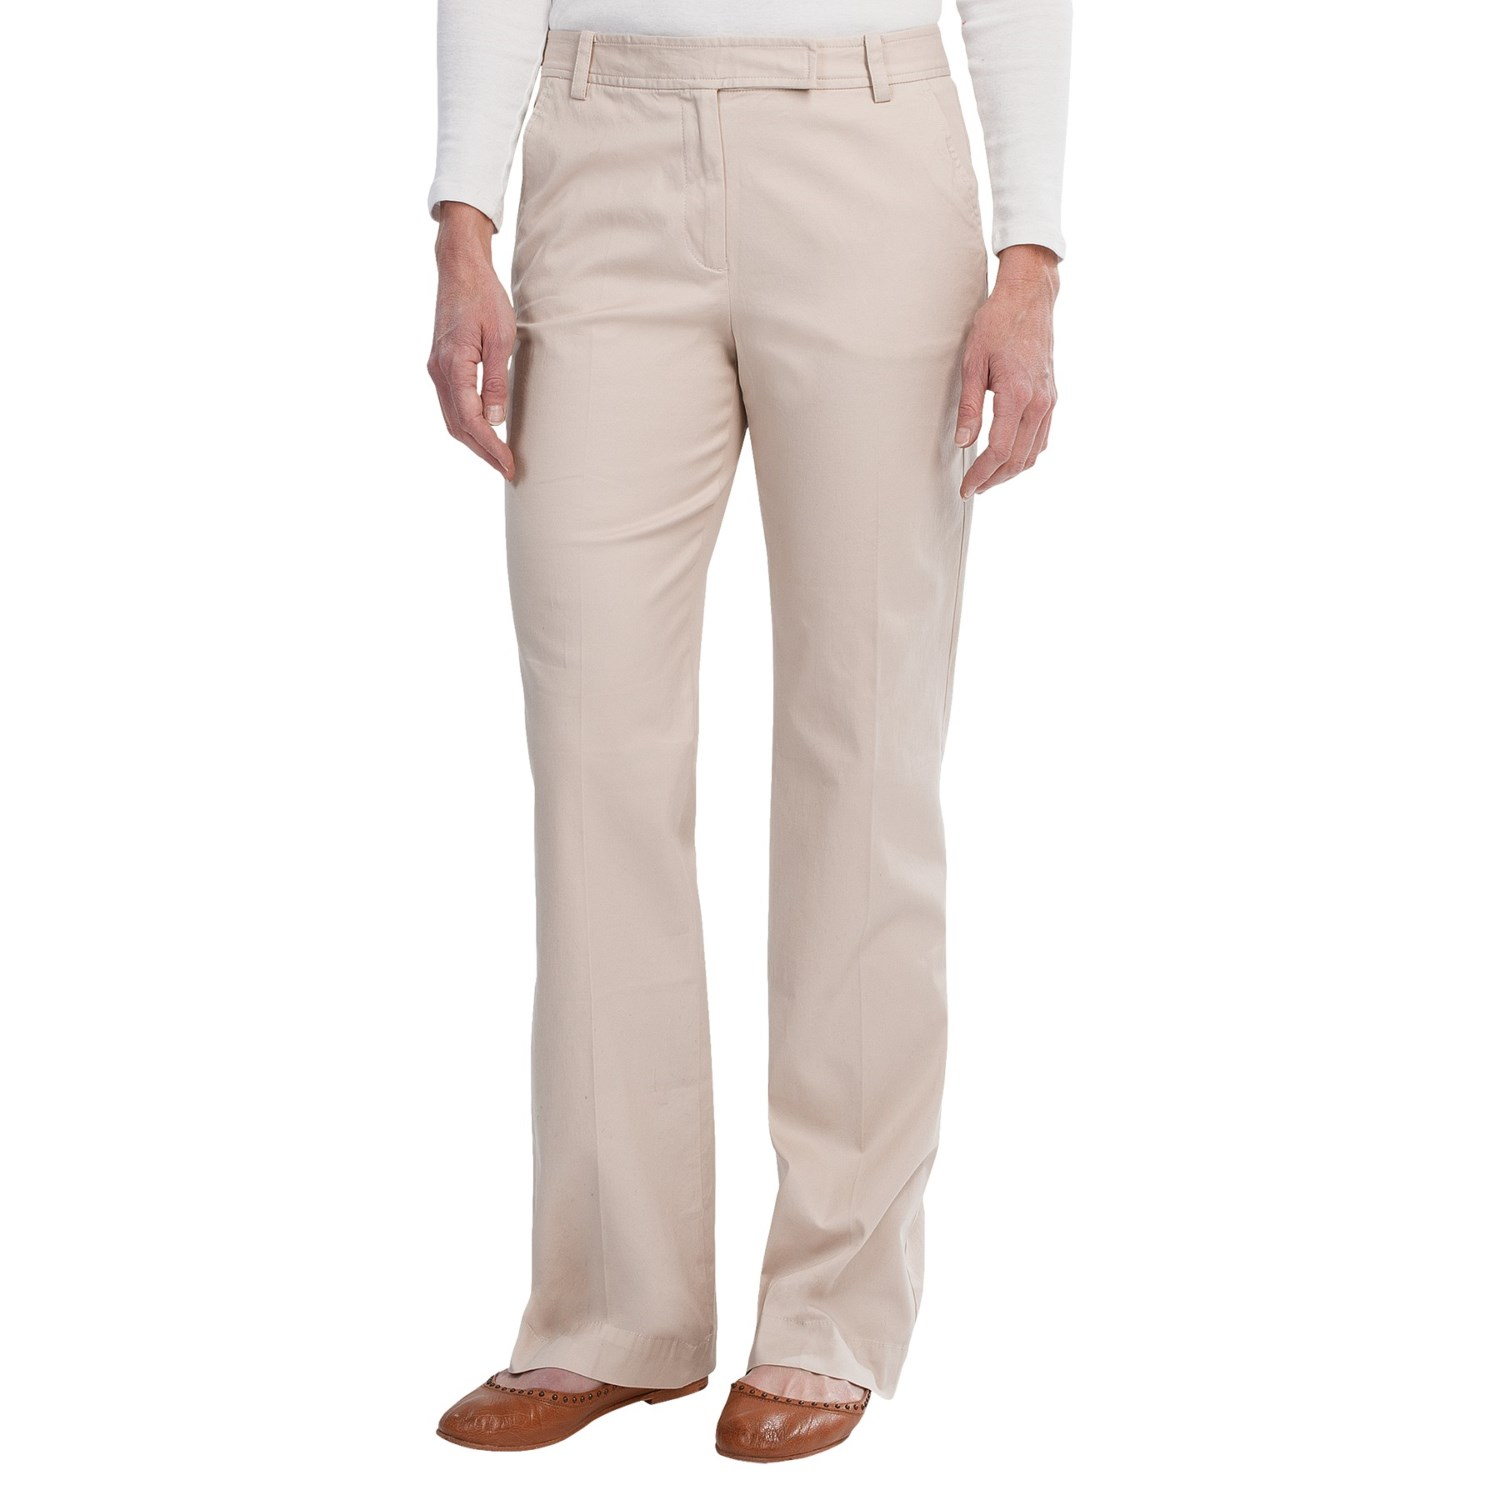 Awesome Michael Kors Womens Cotton WideLeg Pants  Womenchicc